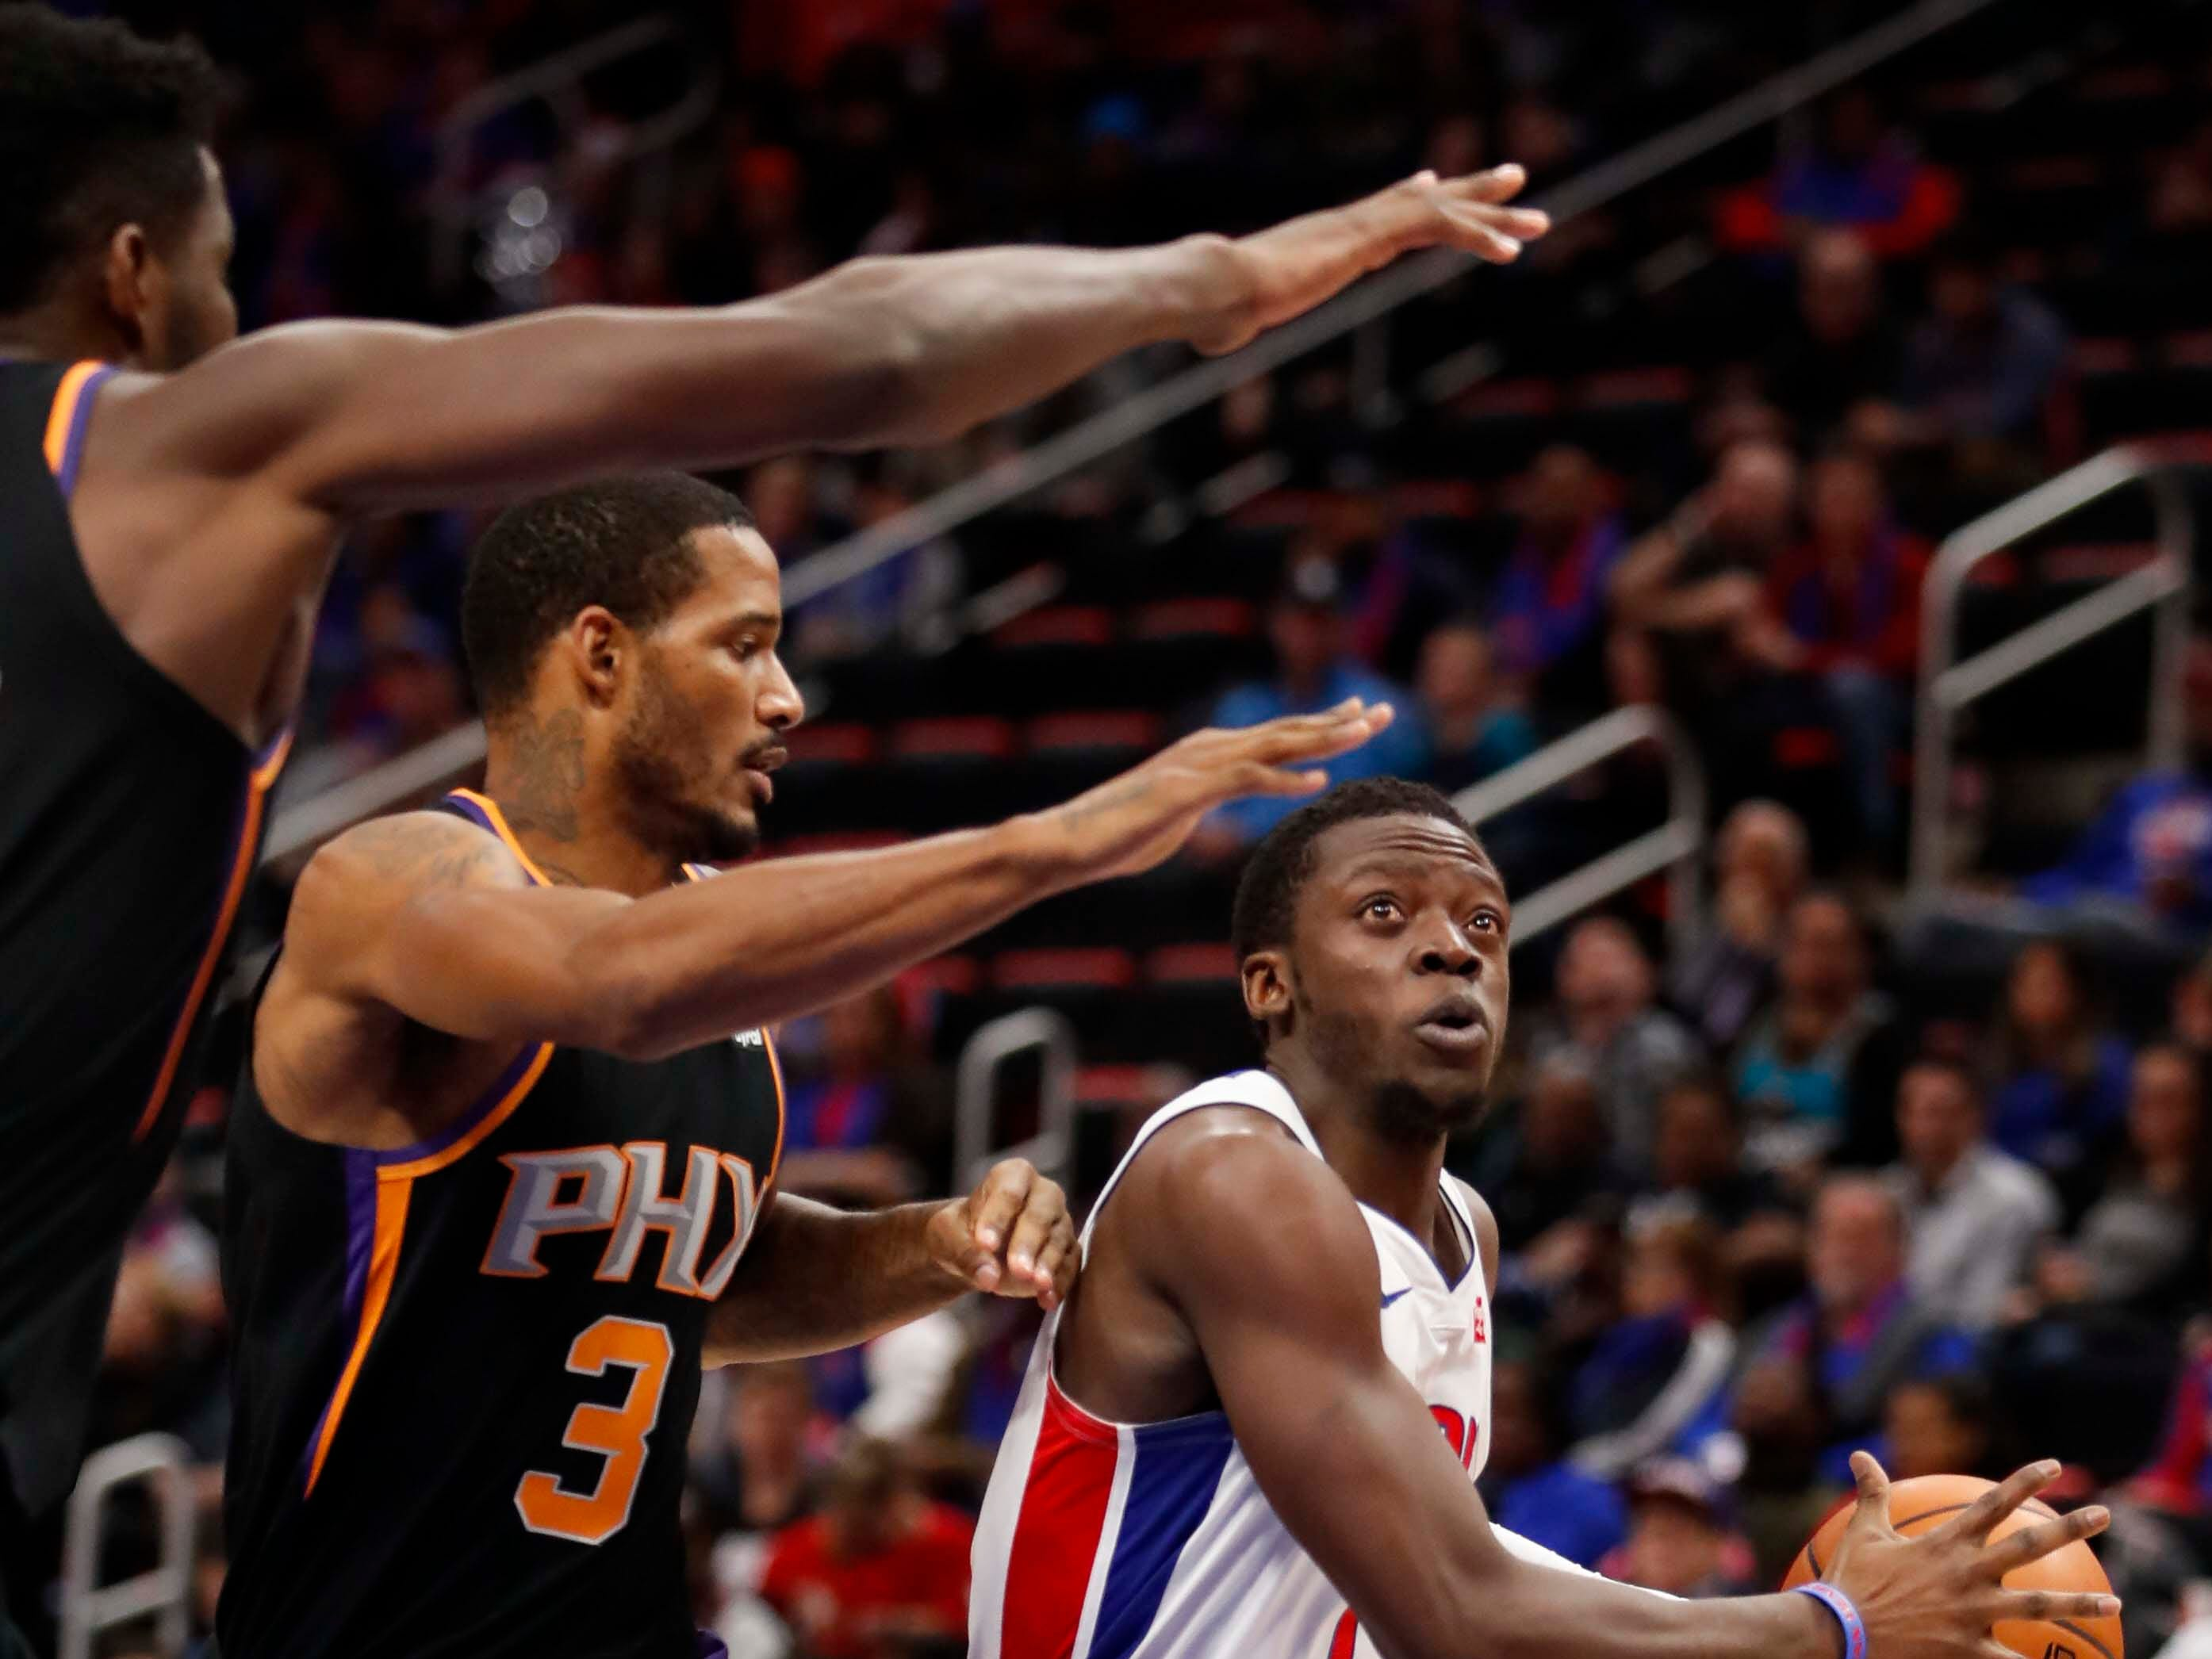 Nov 25, 2018; Detroit, MI, USA; Detroit Pistons guard Reggie Jackson (1) gets defended by Phoenix Suns forward Trevor Ariza (3) during the second quarter at Little Caesars Arena. Mandatory Credit: Raj Mehta-USA TODAY Sports